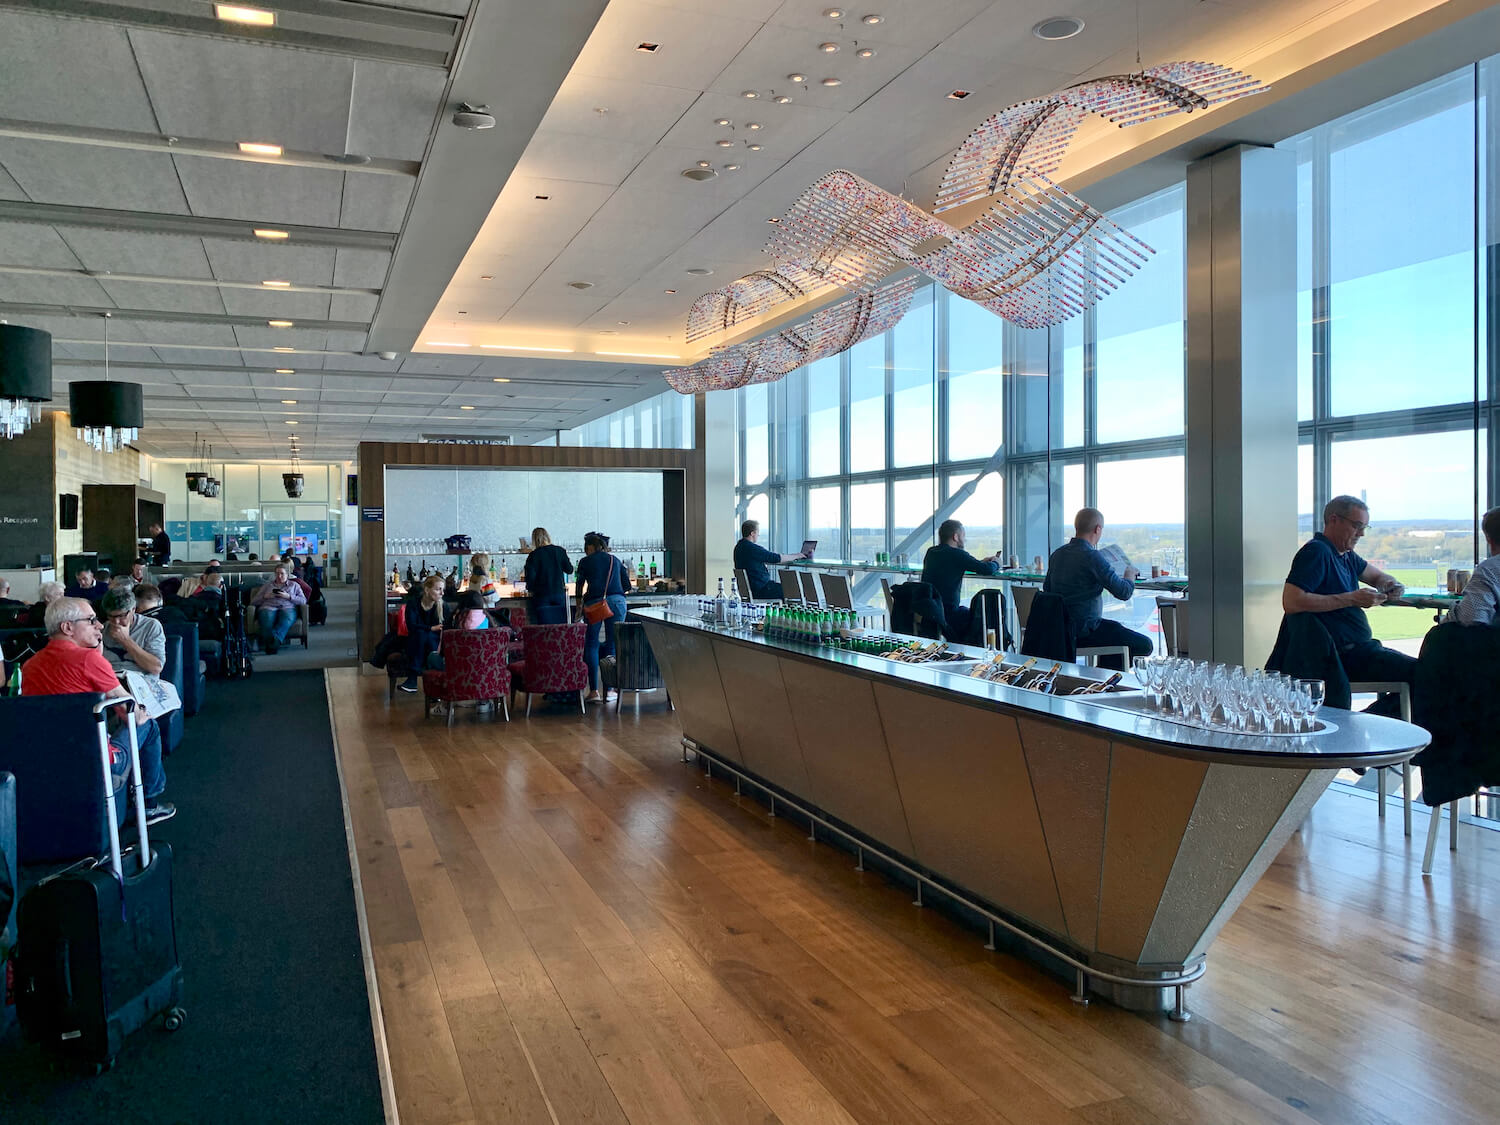 British Airways Galleries Lounge South - Seating and Bar